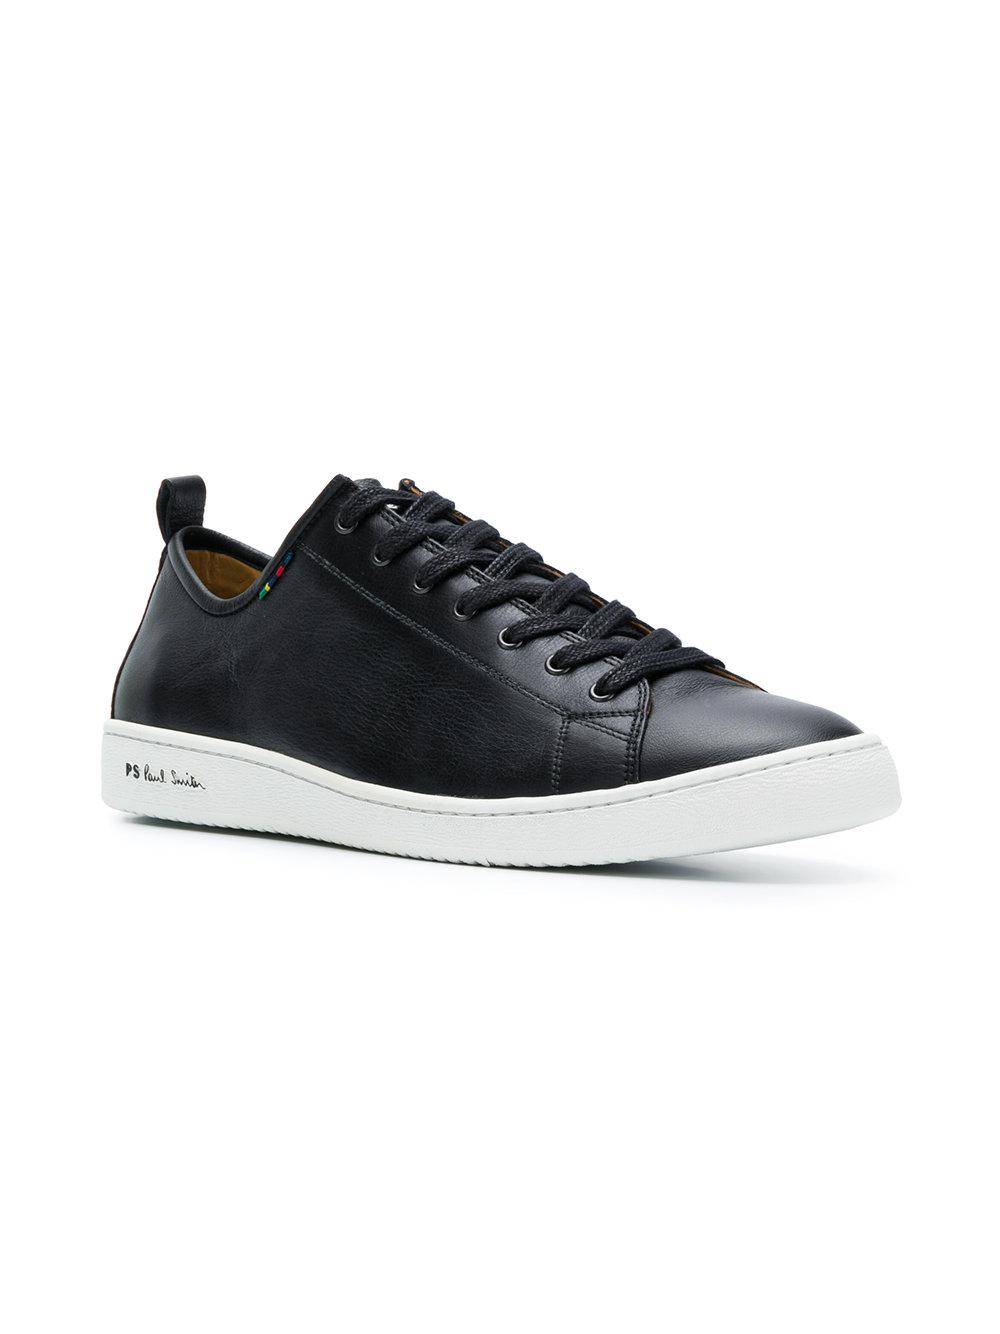 classic low-top sneakers - Blue Paul Smith kqTL1a